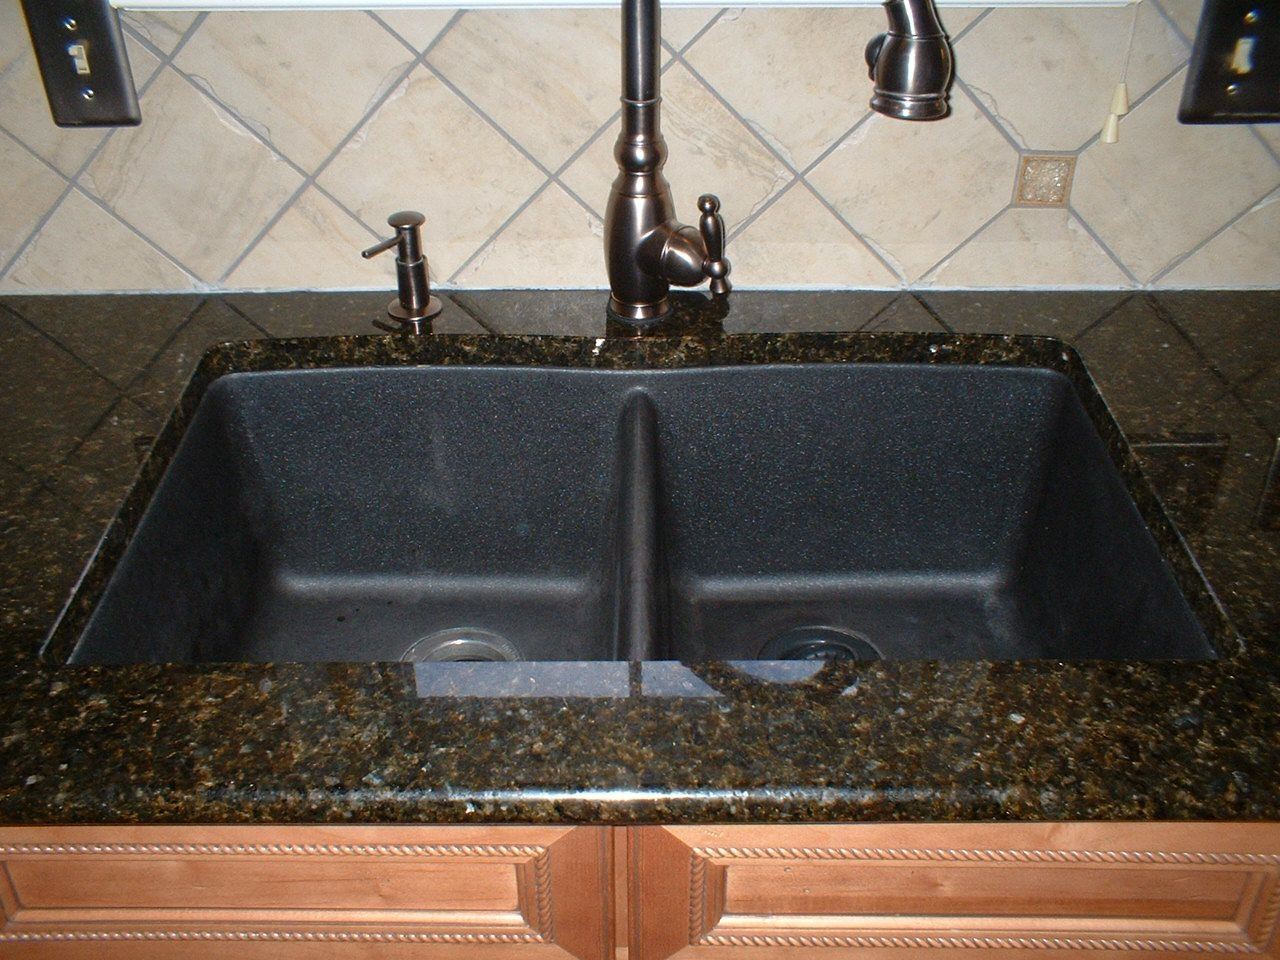 Ideas, best bathroom sink faucets 2013 best bathroom sink faucets 2013 colors taking blue pearl quartzite tags 60 kitchen sink faucets 1280 x 960  .